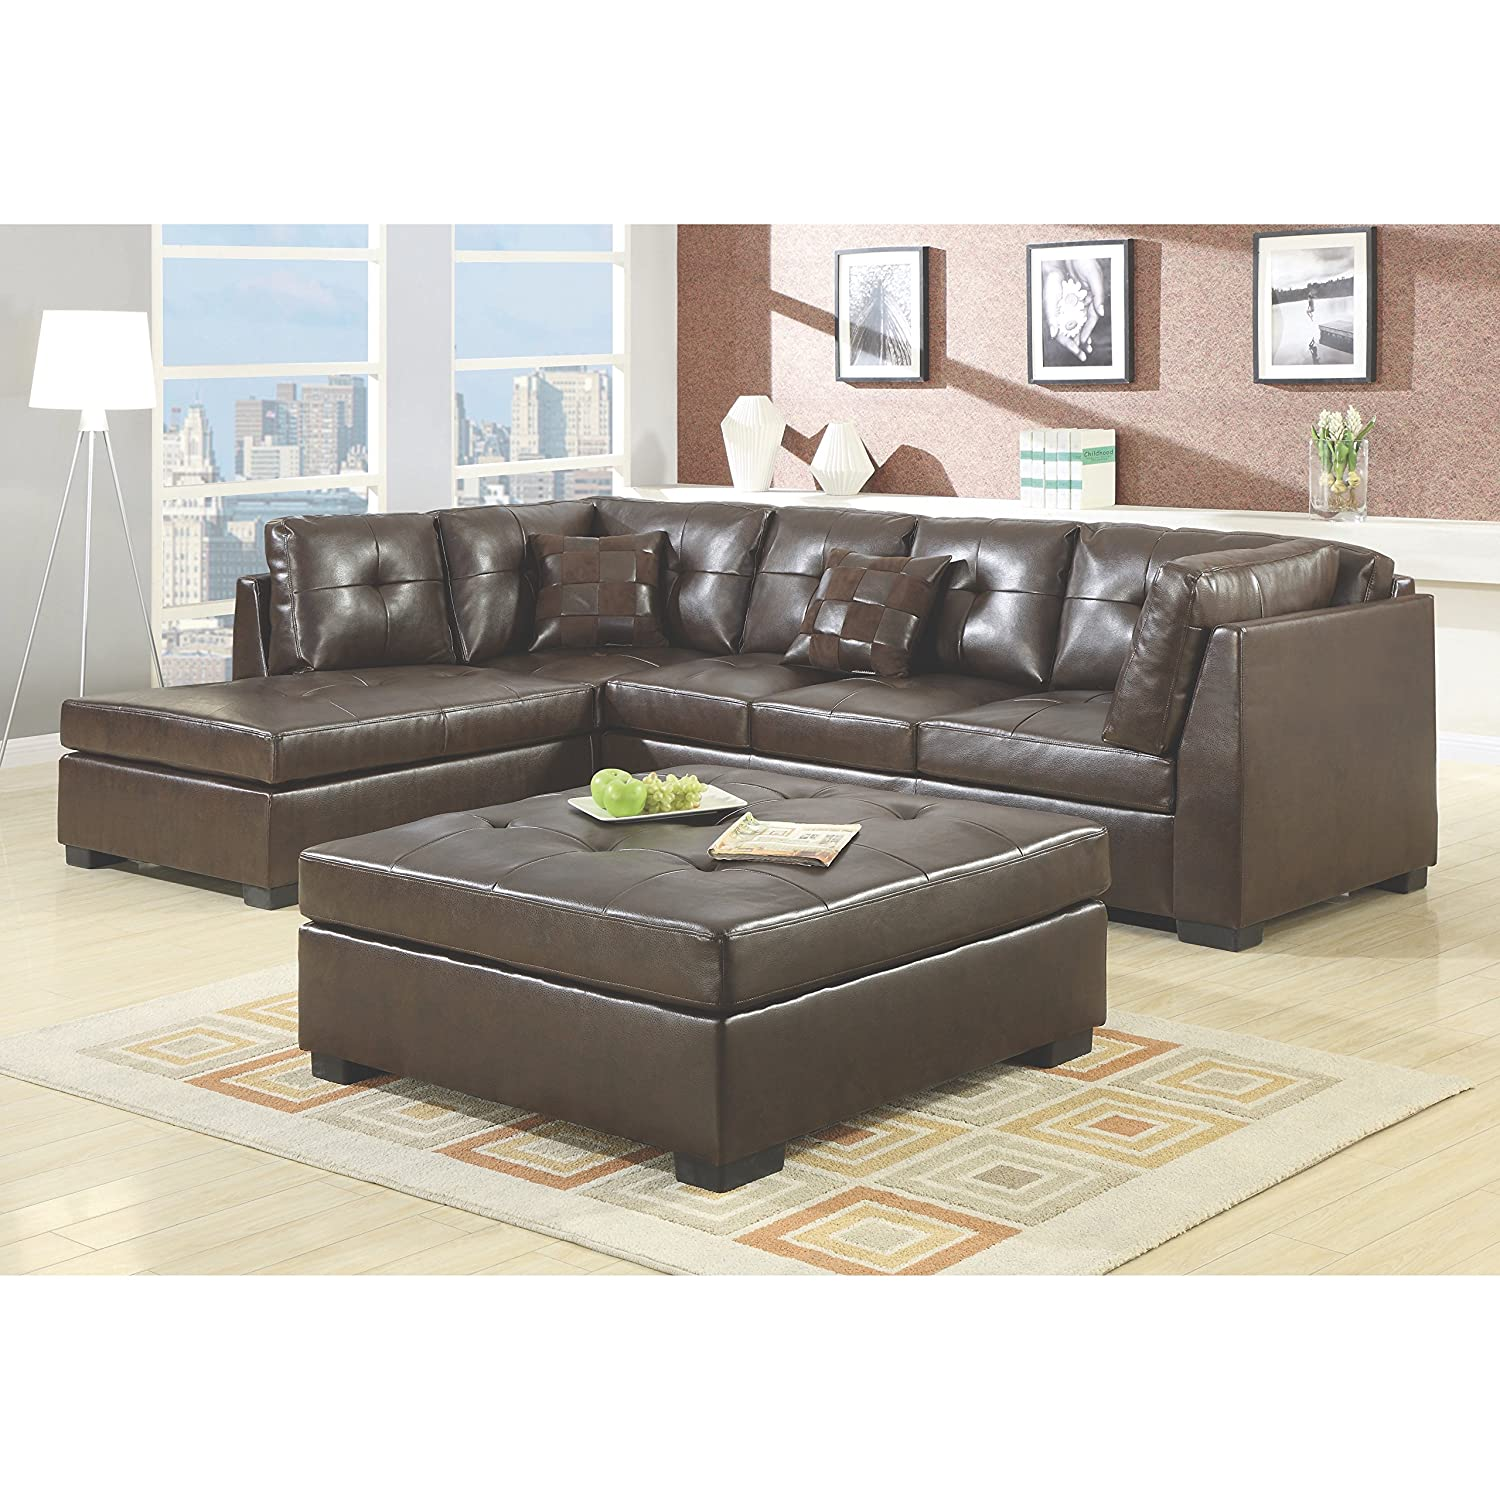 Amazon.com Coaster Home Furnishings 500686 Casual Sectional Sofa Brown Kitchen u0026 Dining  sc 1 st  Amazon.com : sectional leather furniture - Sectionals, Sofas & Couches